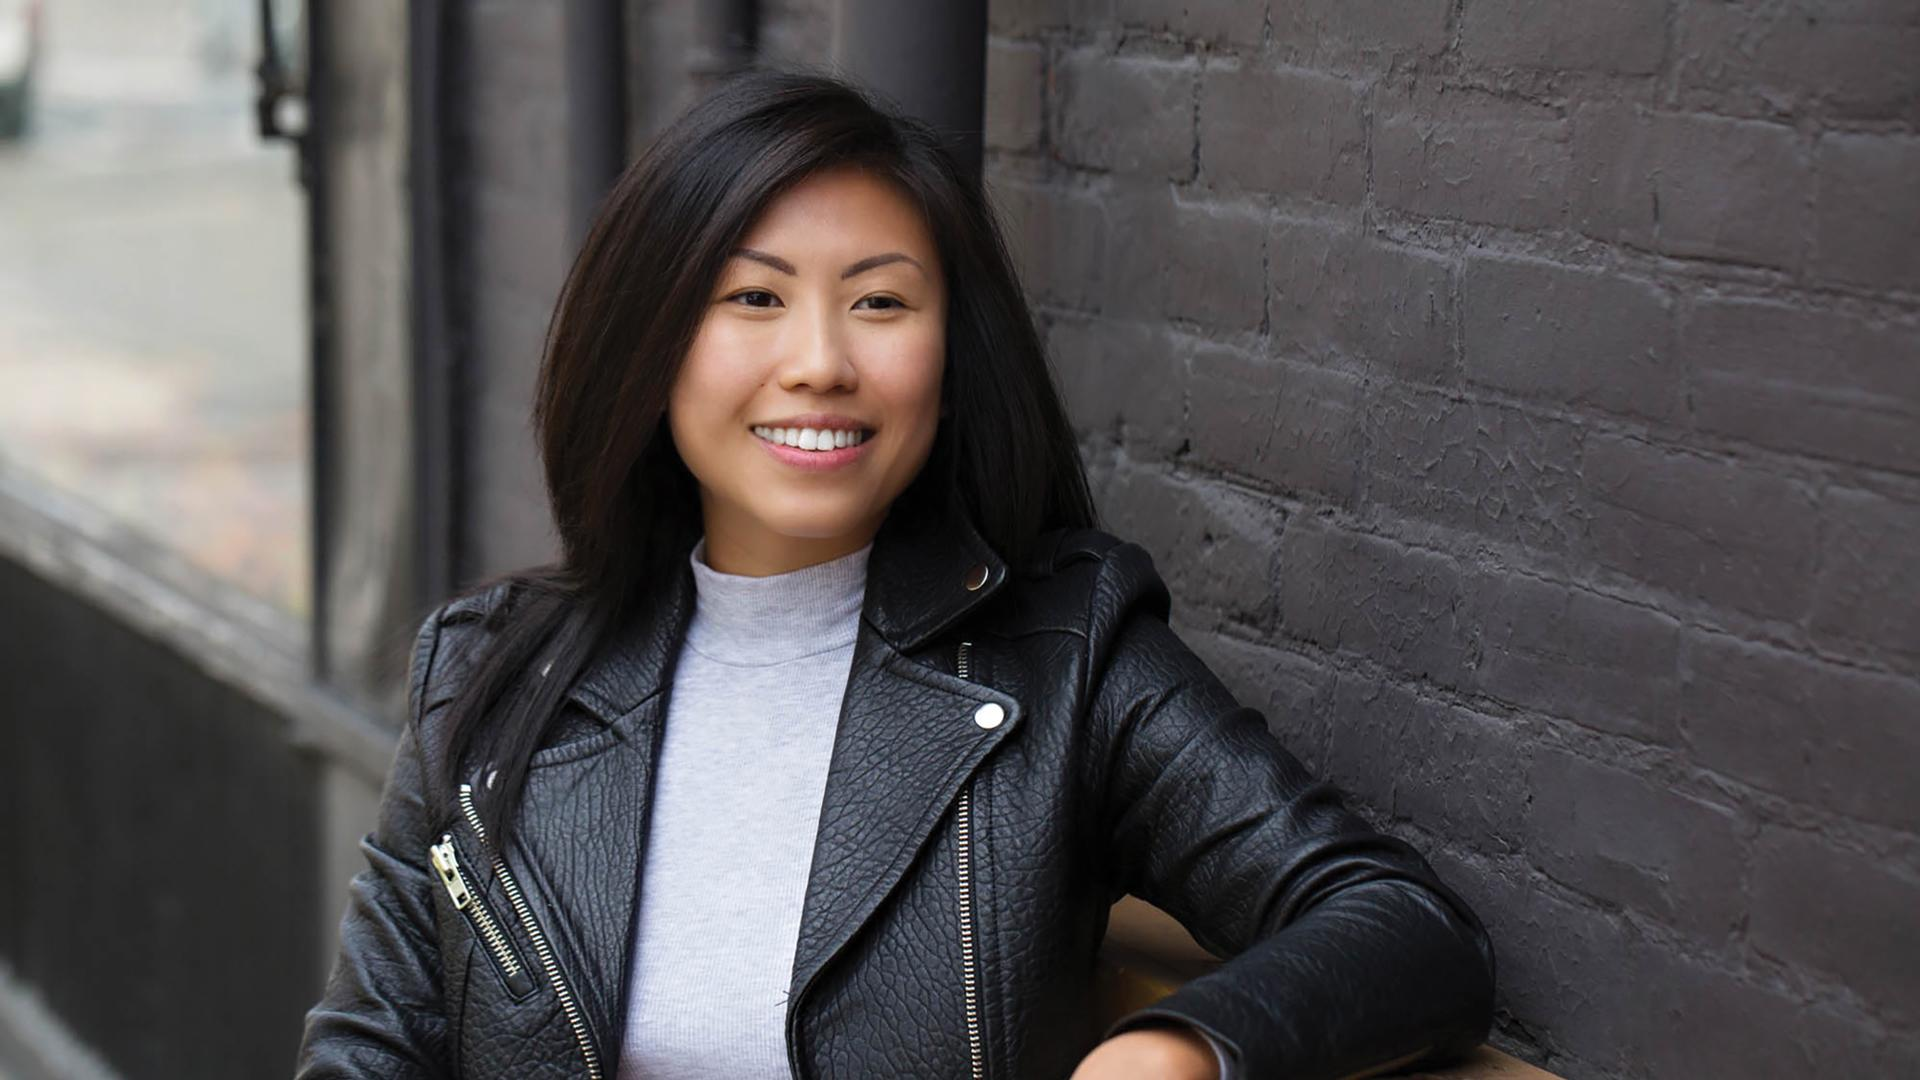 Cocktail recipes and tips from Toronto's best bartenders | Evelyn Chick of the Stay At Home Cocktail Club